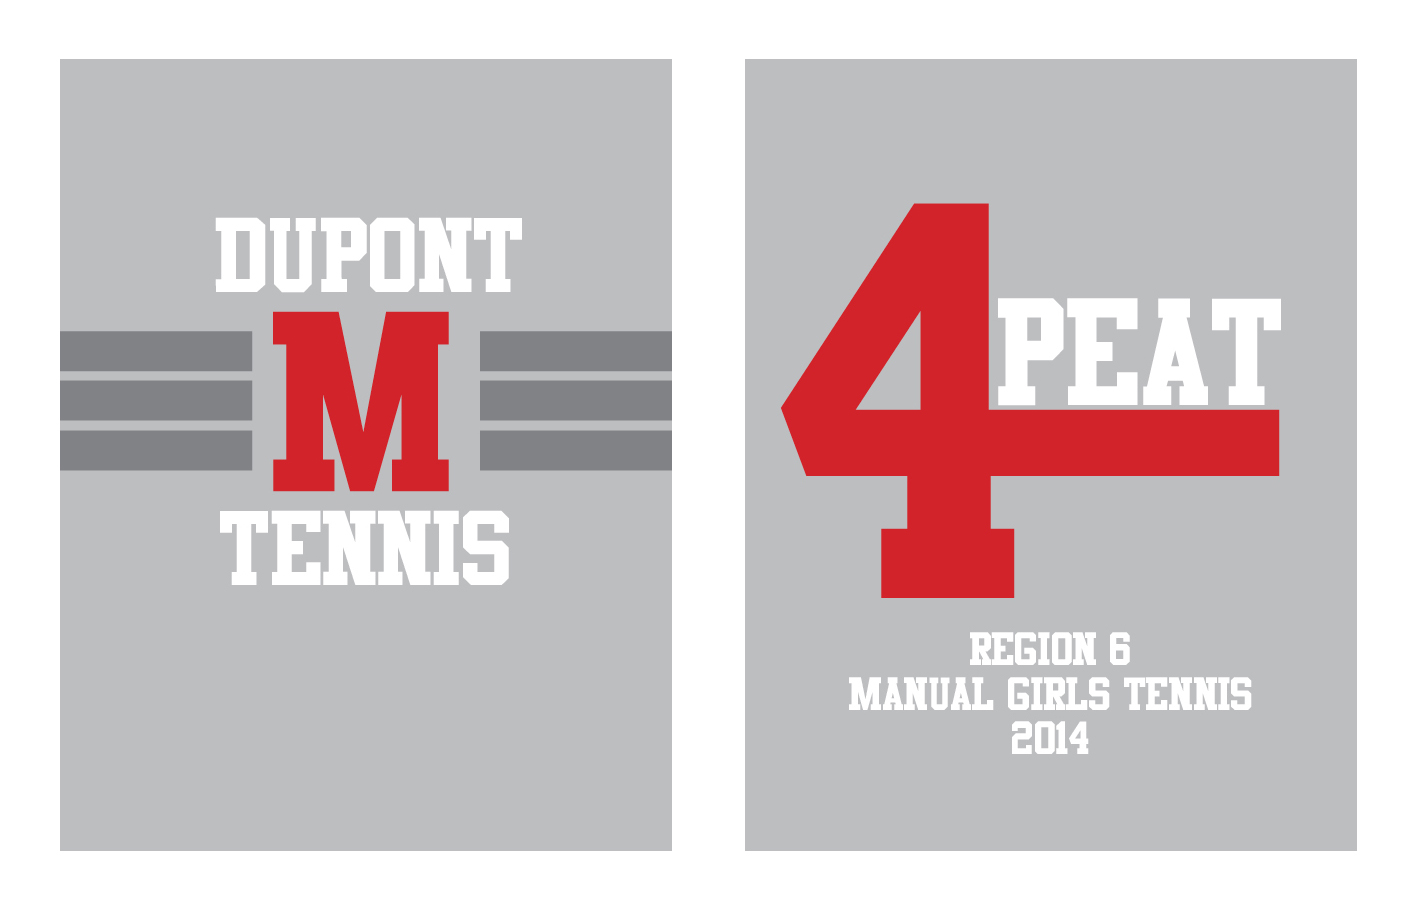 Tennis Team t-shirt   The front and back of a heather gray t-shirt I designed for the girl's tennis team